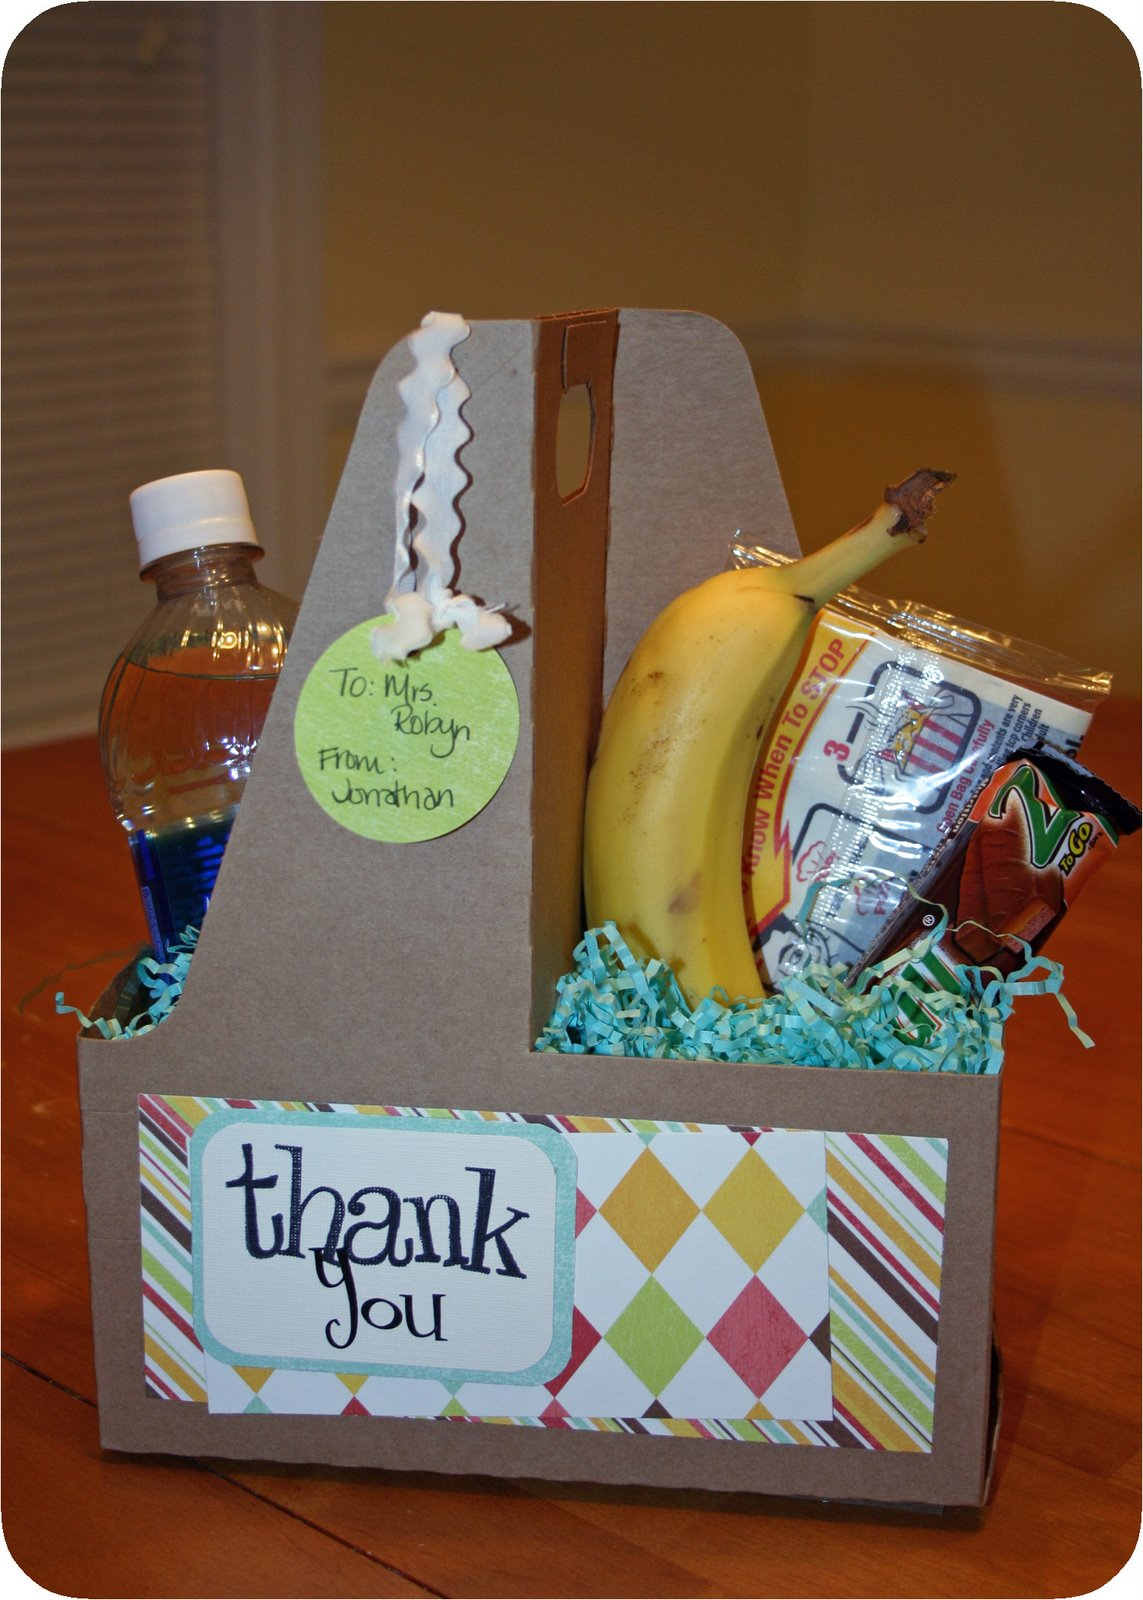 Creative ideas for teacher appreciation week may 7 11 i love this idea from women living well blog cute and simple my kind of gift negle Choice Image